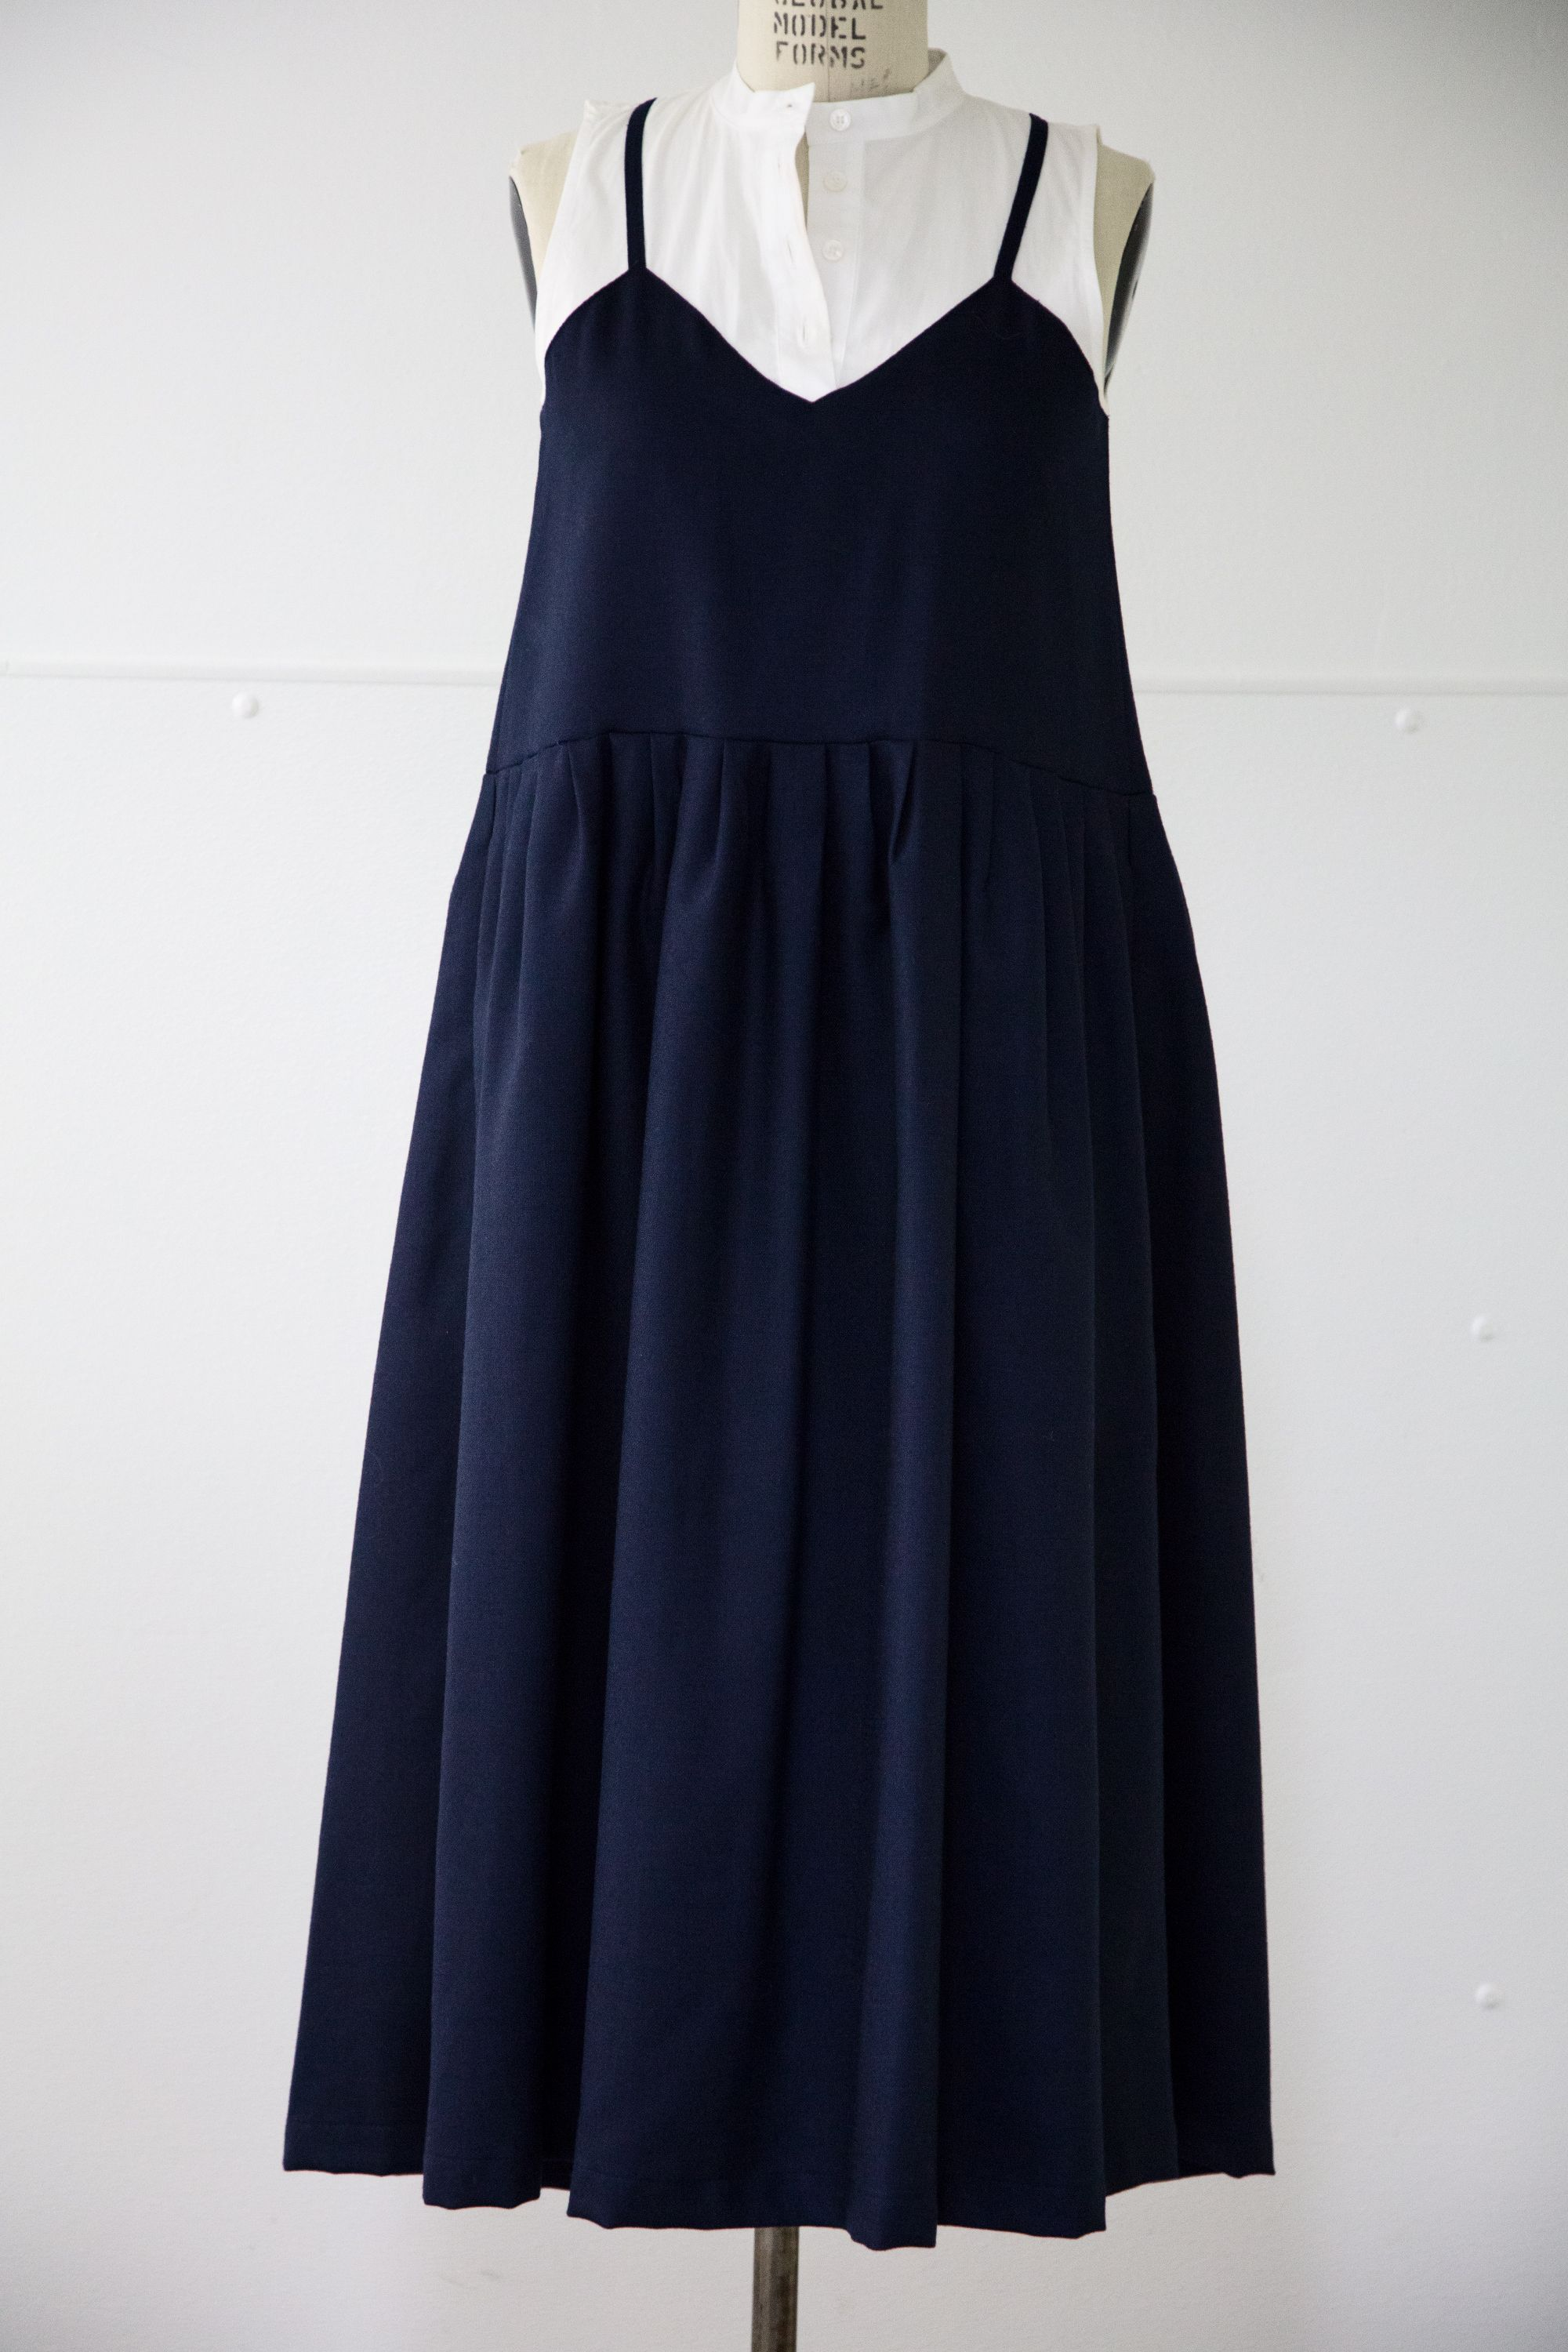 UPPER LEVEL SEA Oversized Navy Pleated dress with builtin